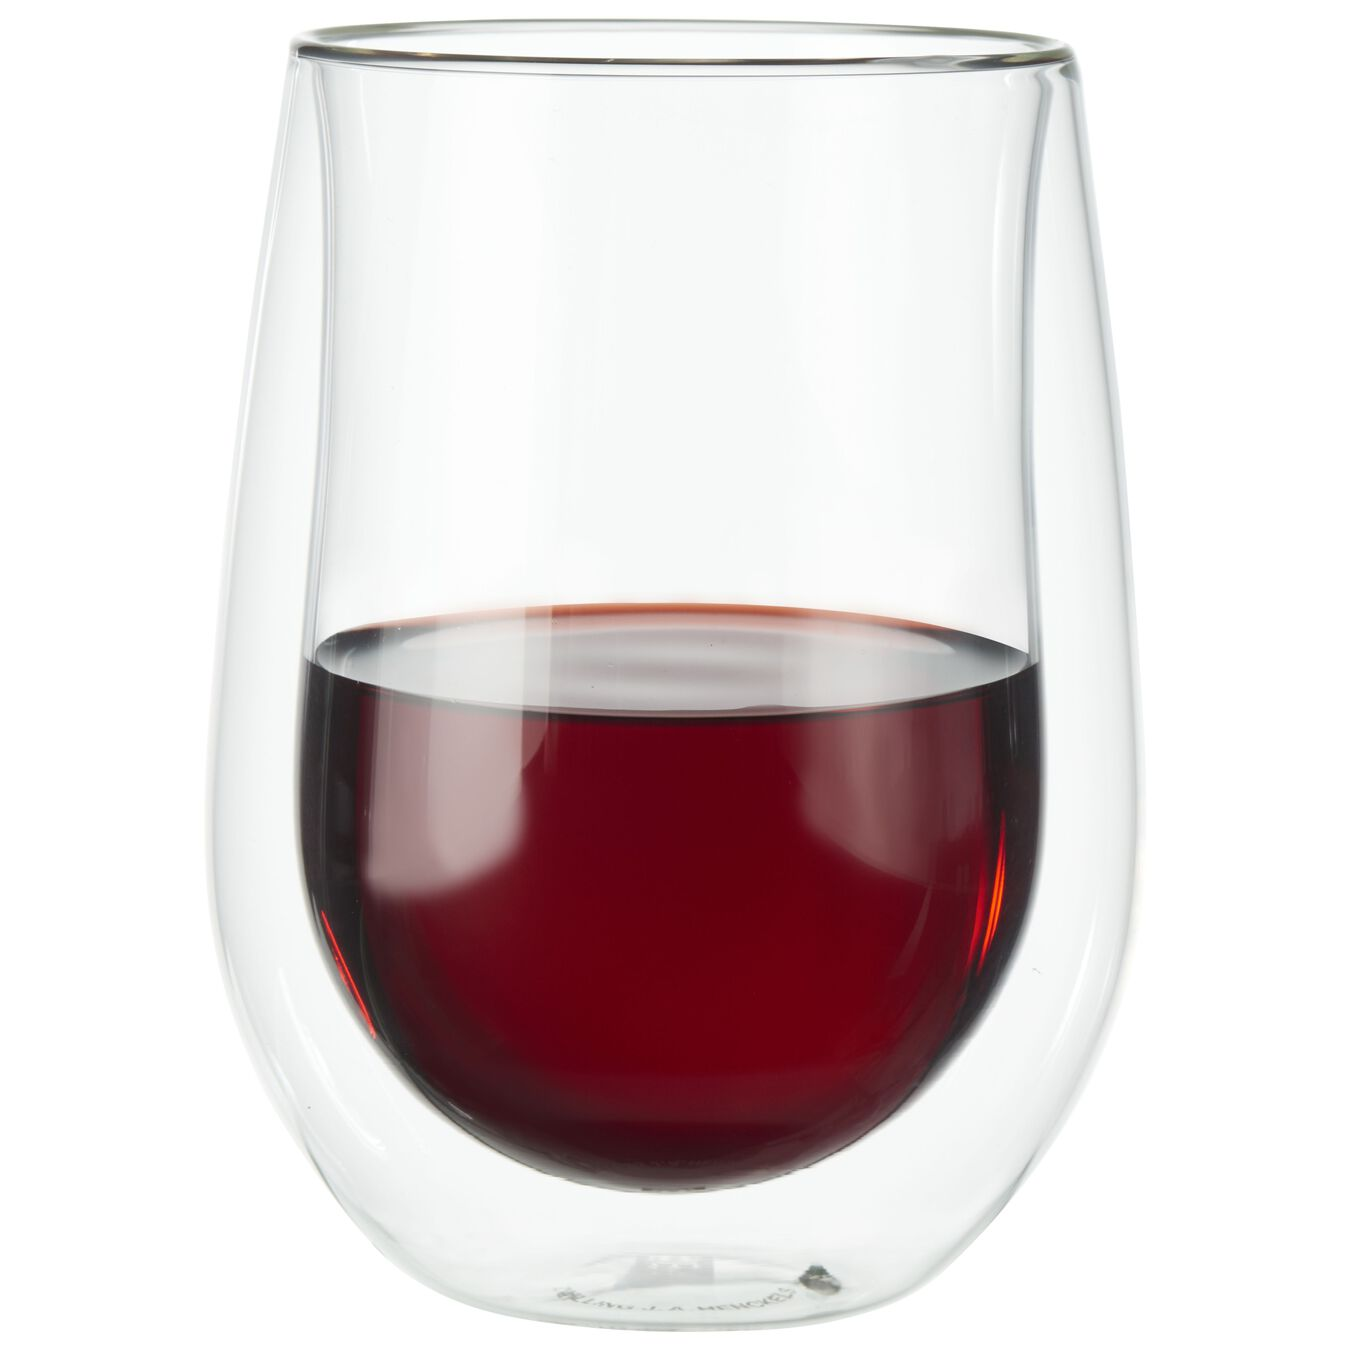 12-oz / 2-pc, Double wall Stemless red wine glass set,,large 1